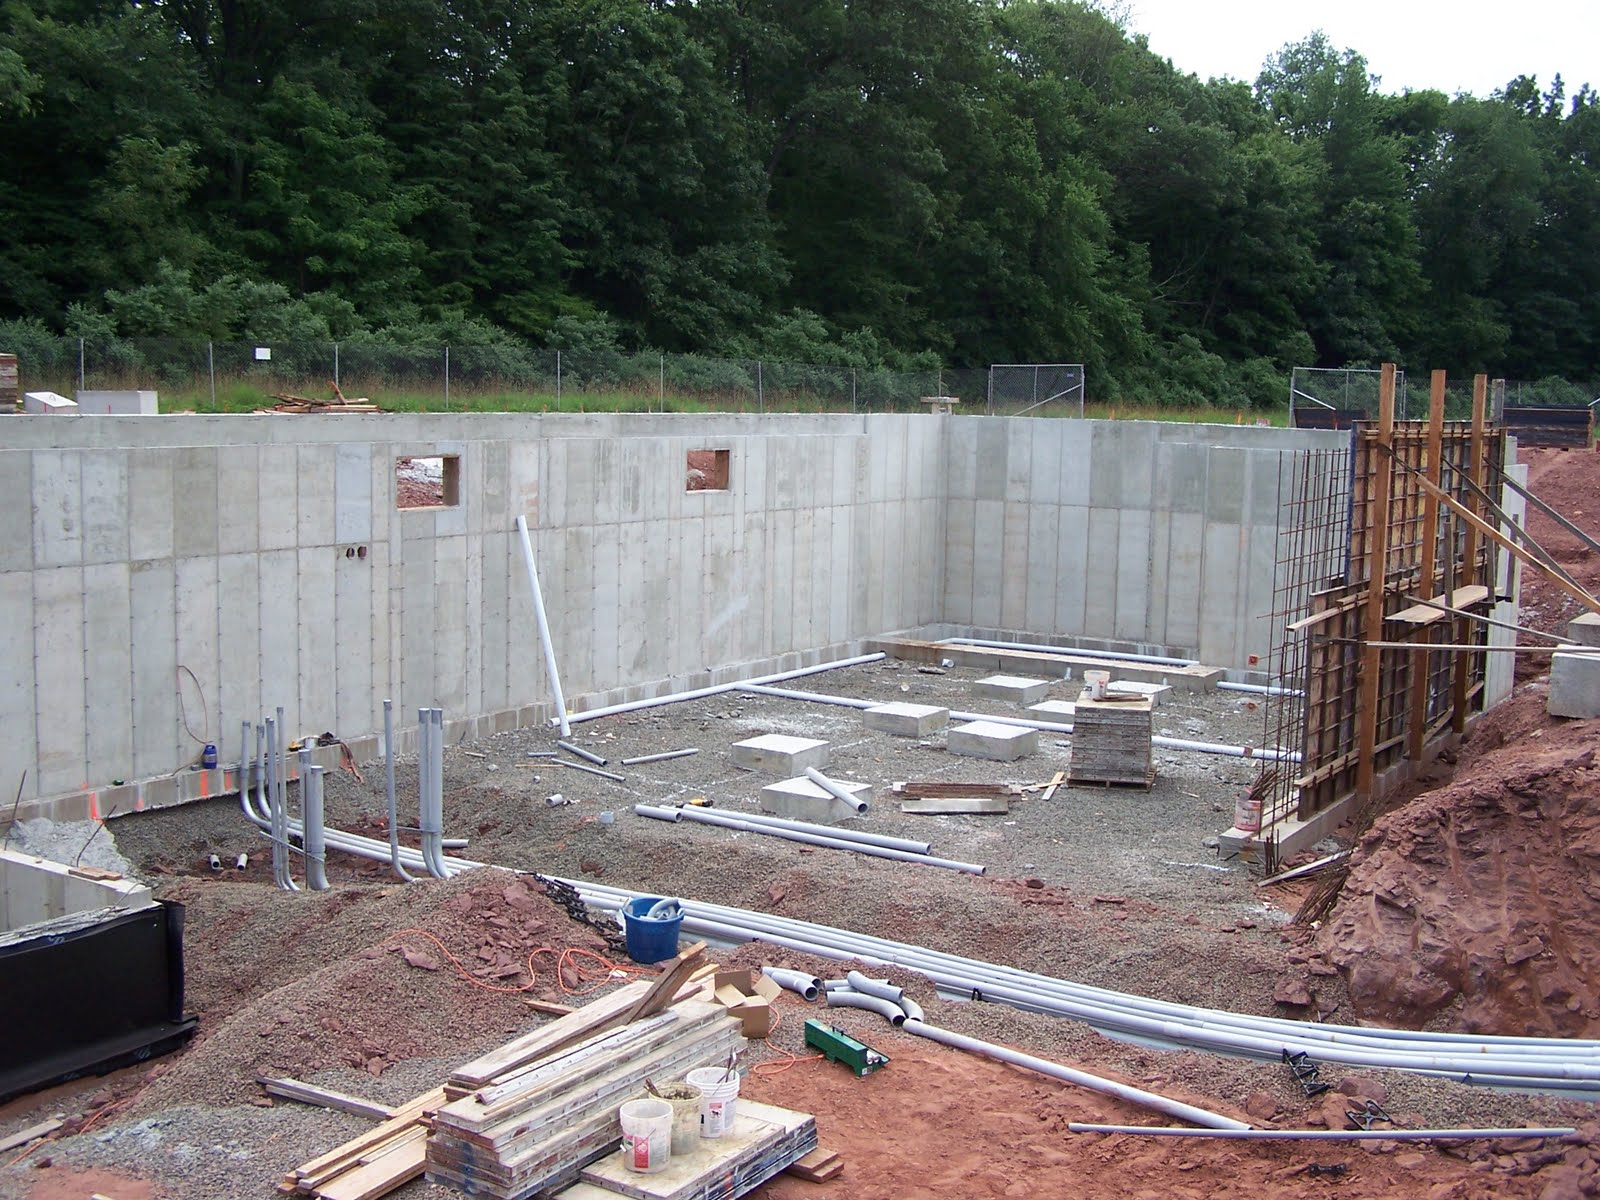 [basement Foundation Walls With Area Left Open For Access To Basement;  Electrical Conduit And Underslab Plumbing In Progress]